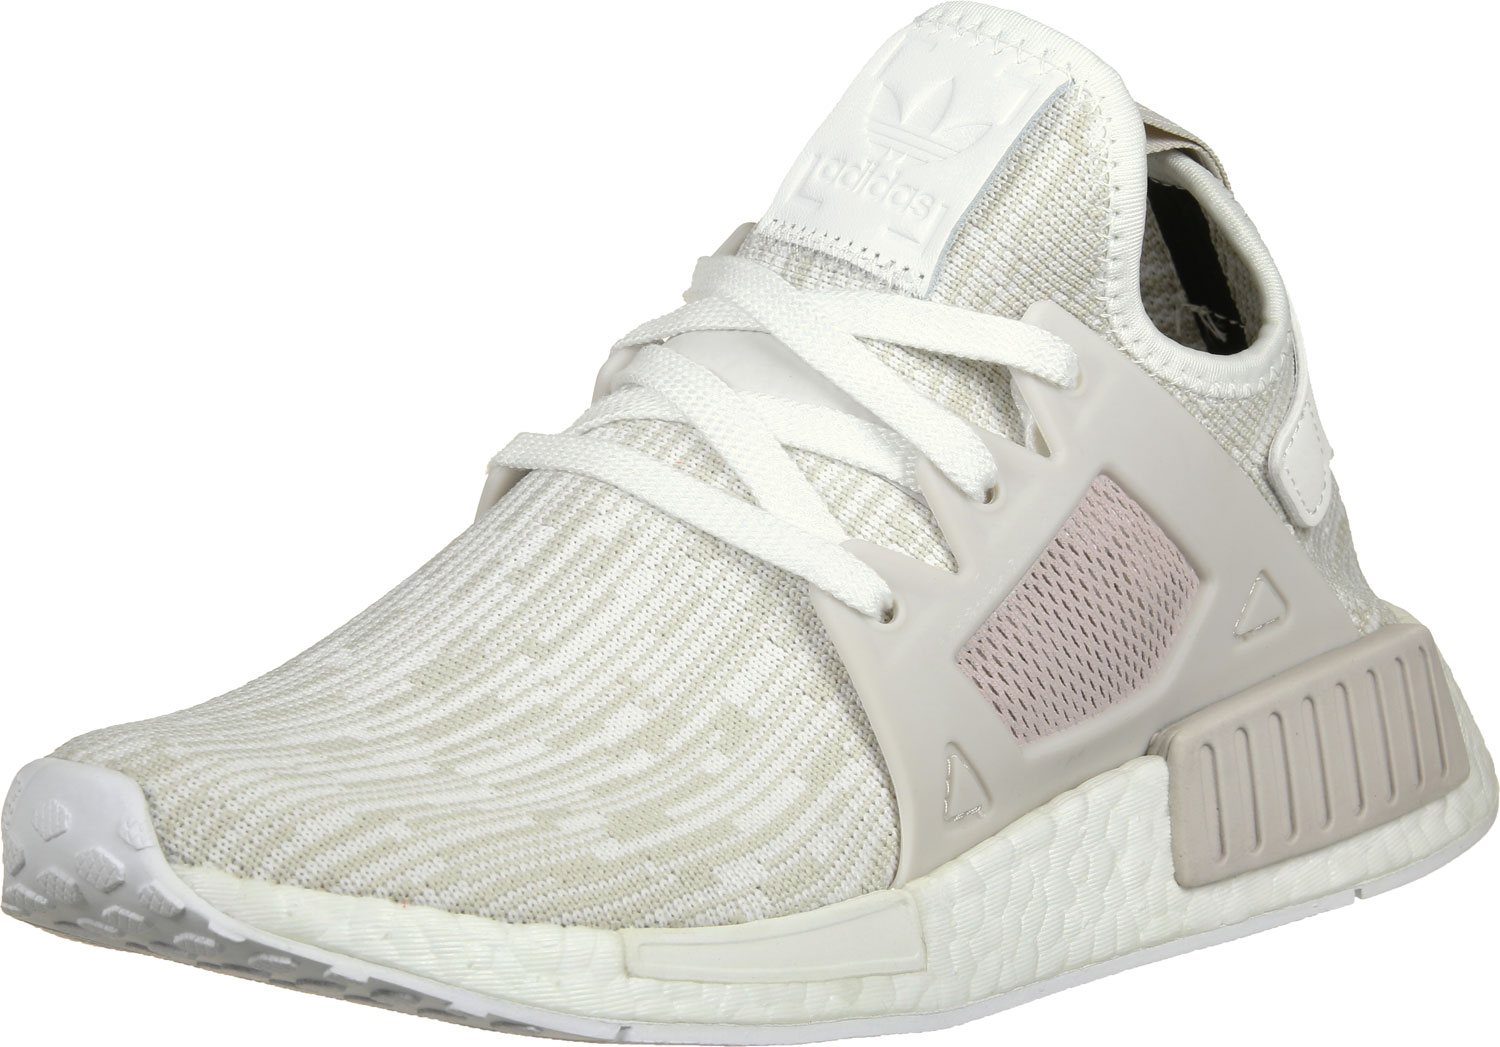 adidas NMD XR1 PK W - Sneakers Low at